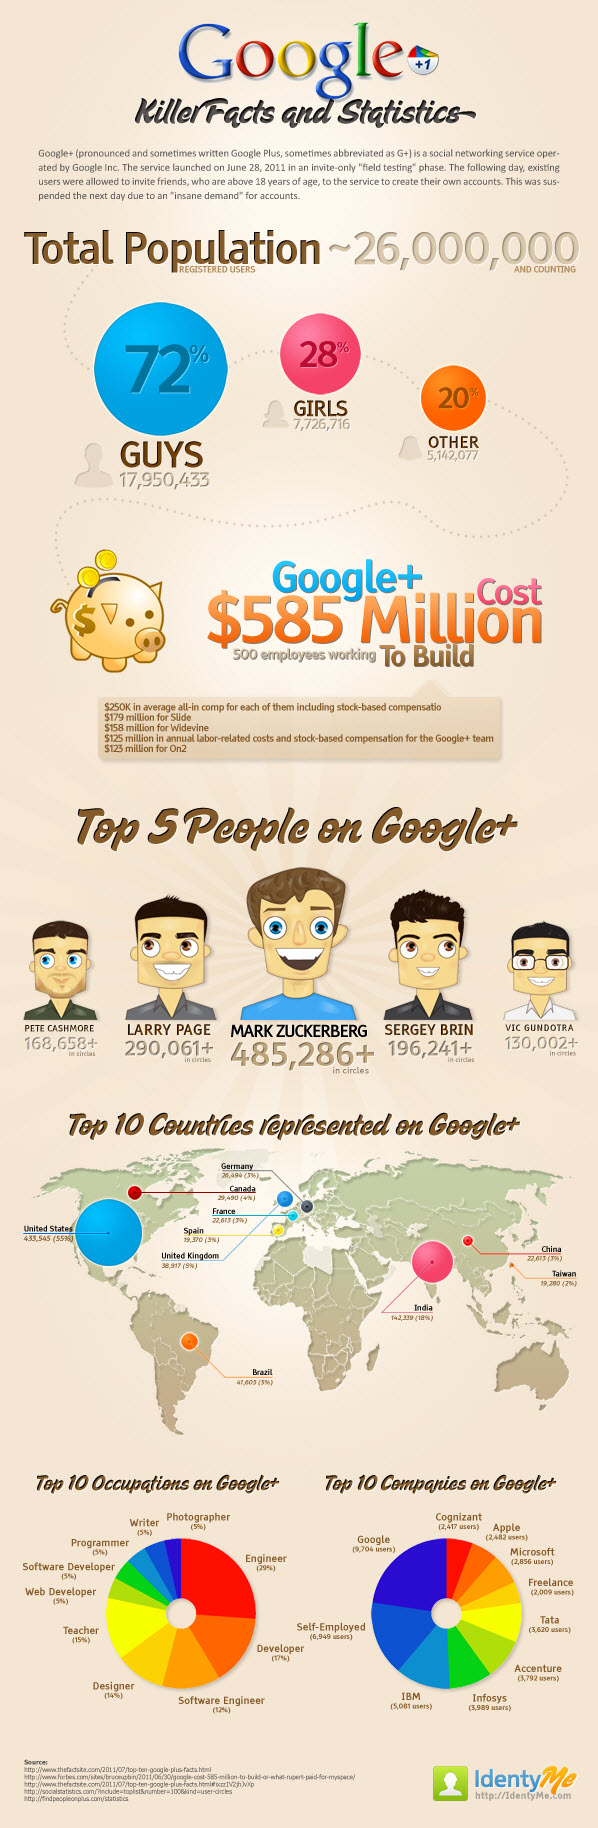 Google+ Facts and Figures